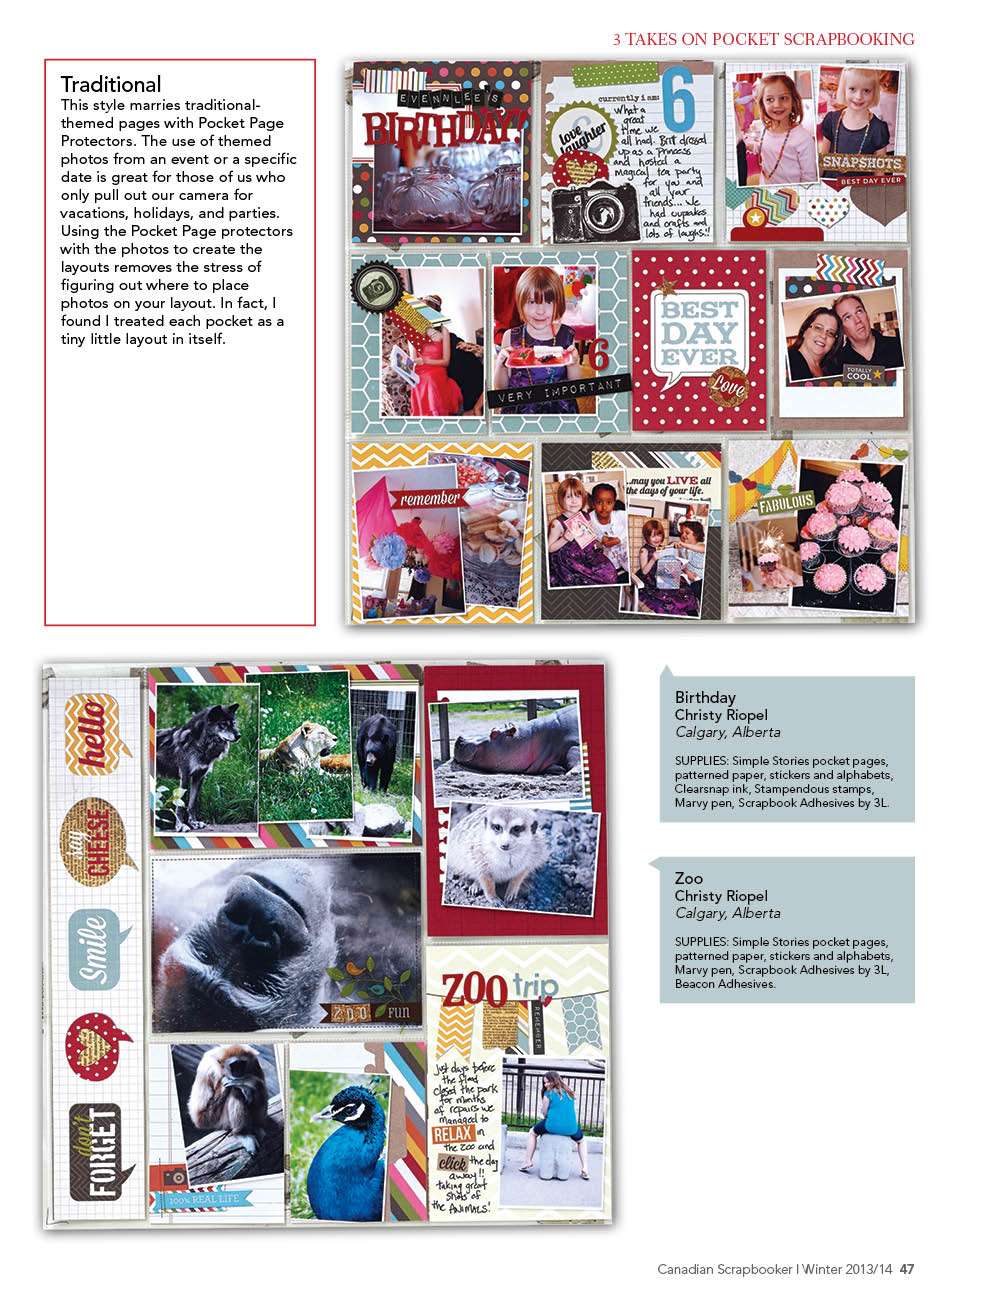 Pocket Scrapbooking Layouts designed by Christy Riopel